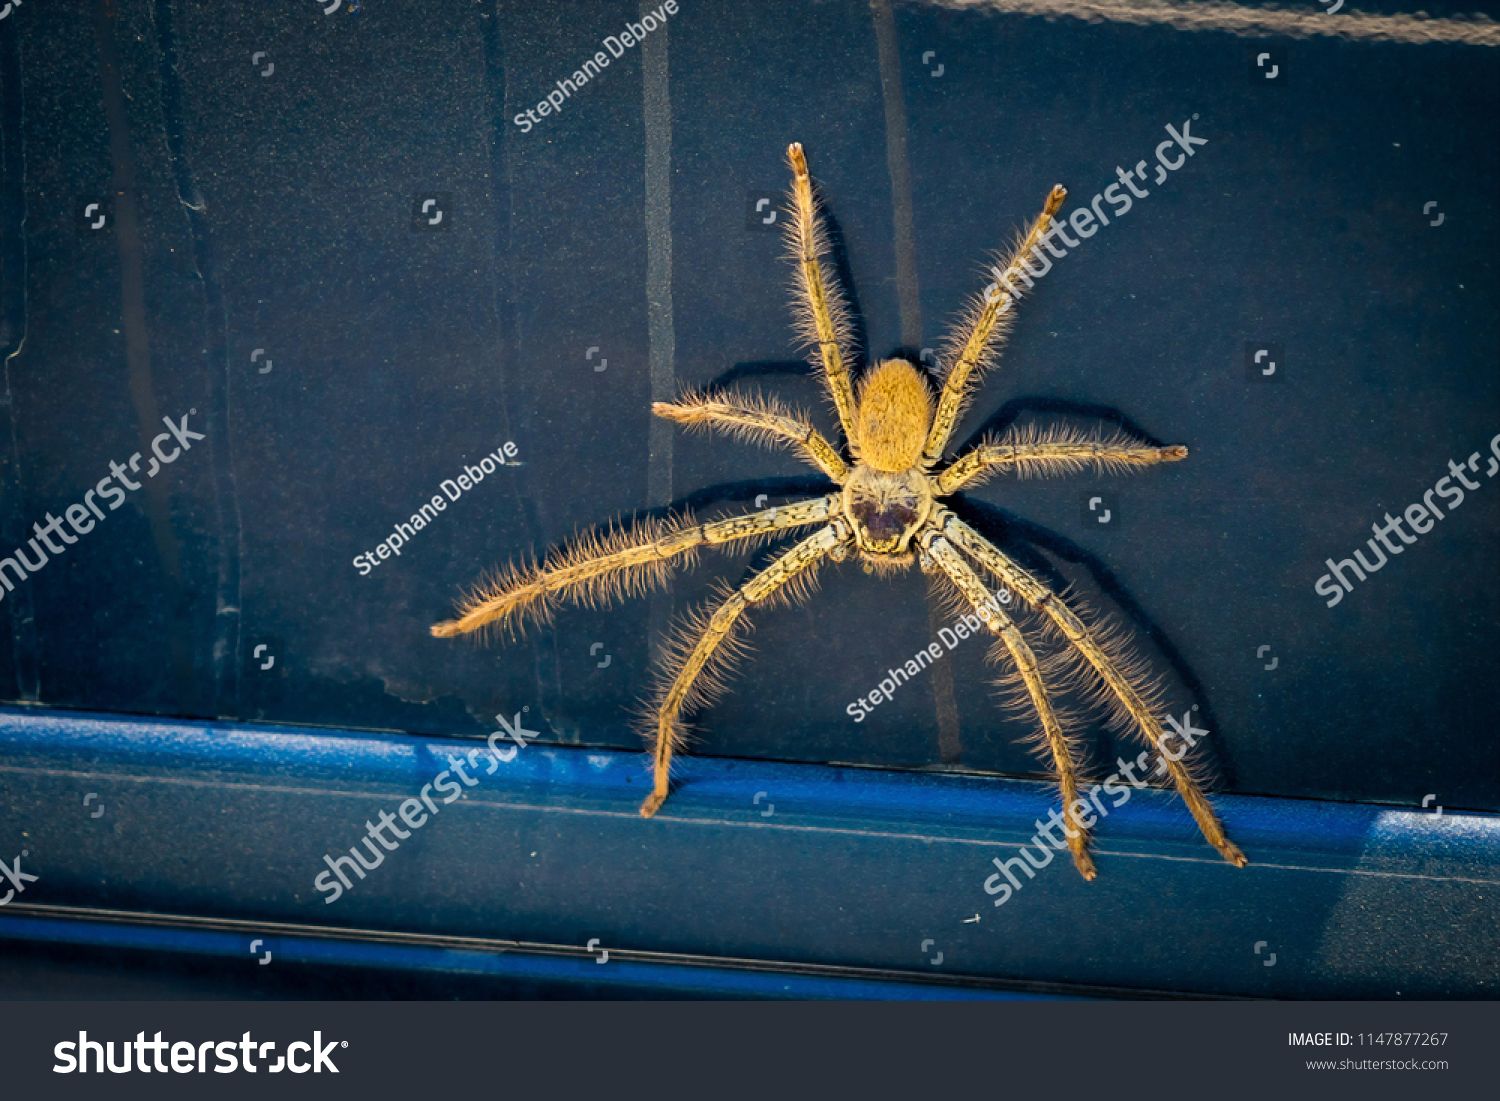 Huntsman Spider Sparassidae On Car Australia Stock Photo